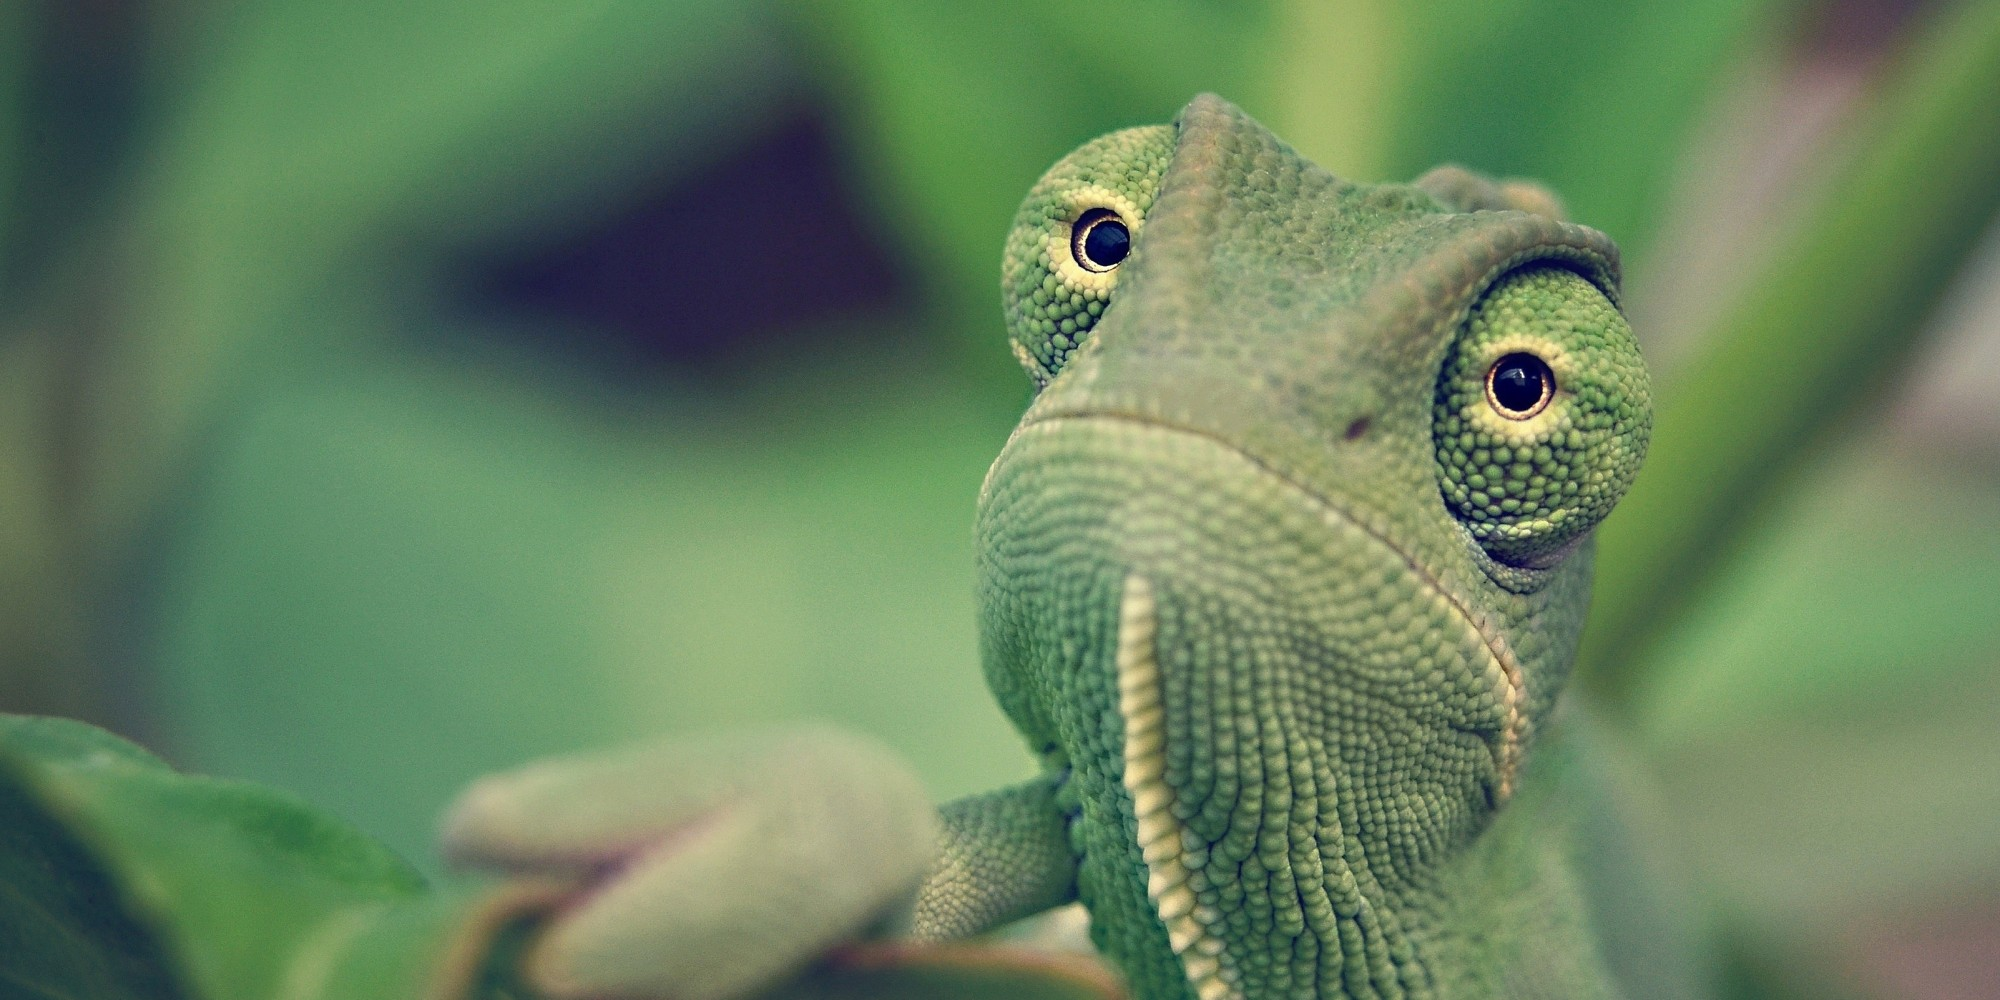 Cute Downloadable Wallpapers Image 9 Chameleon